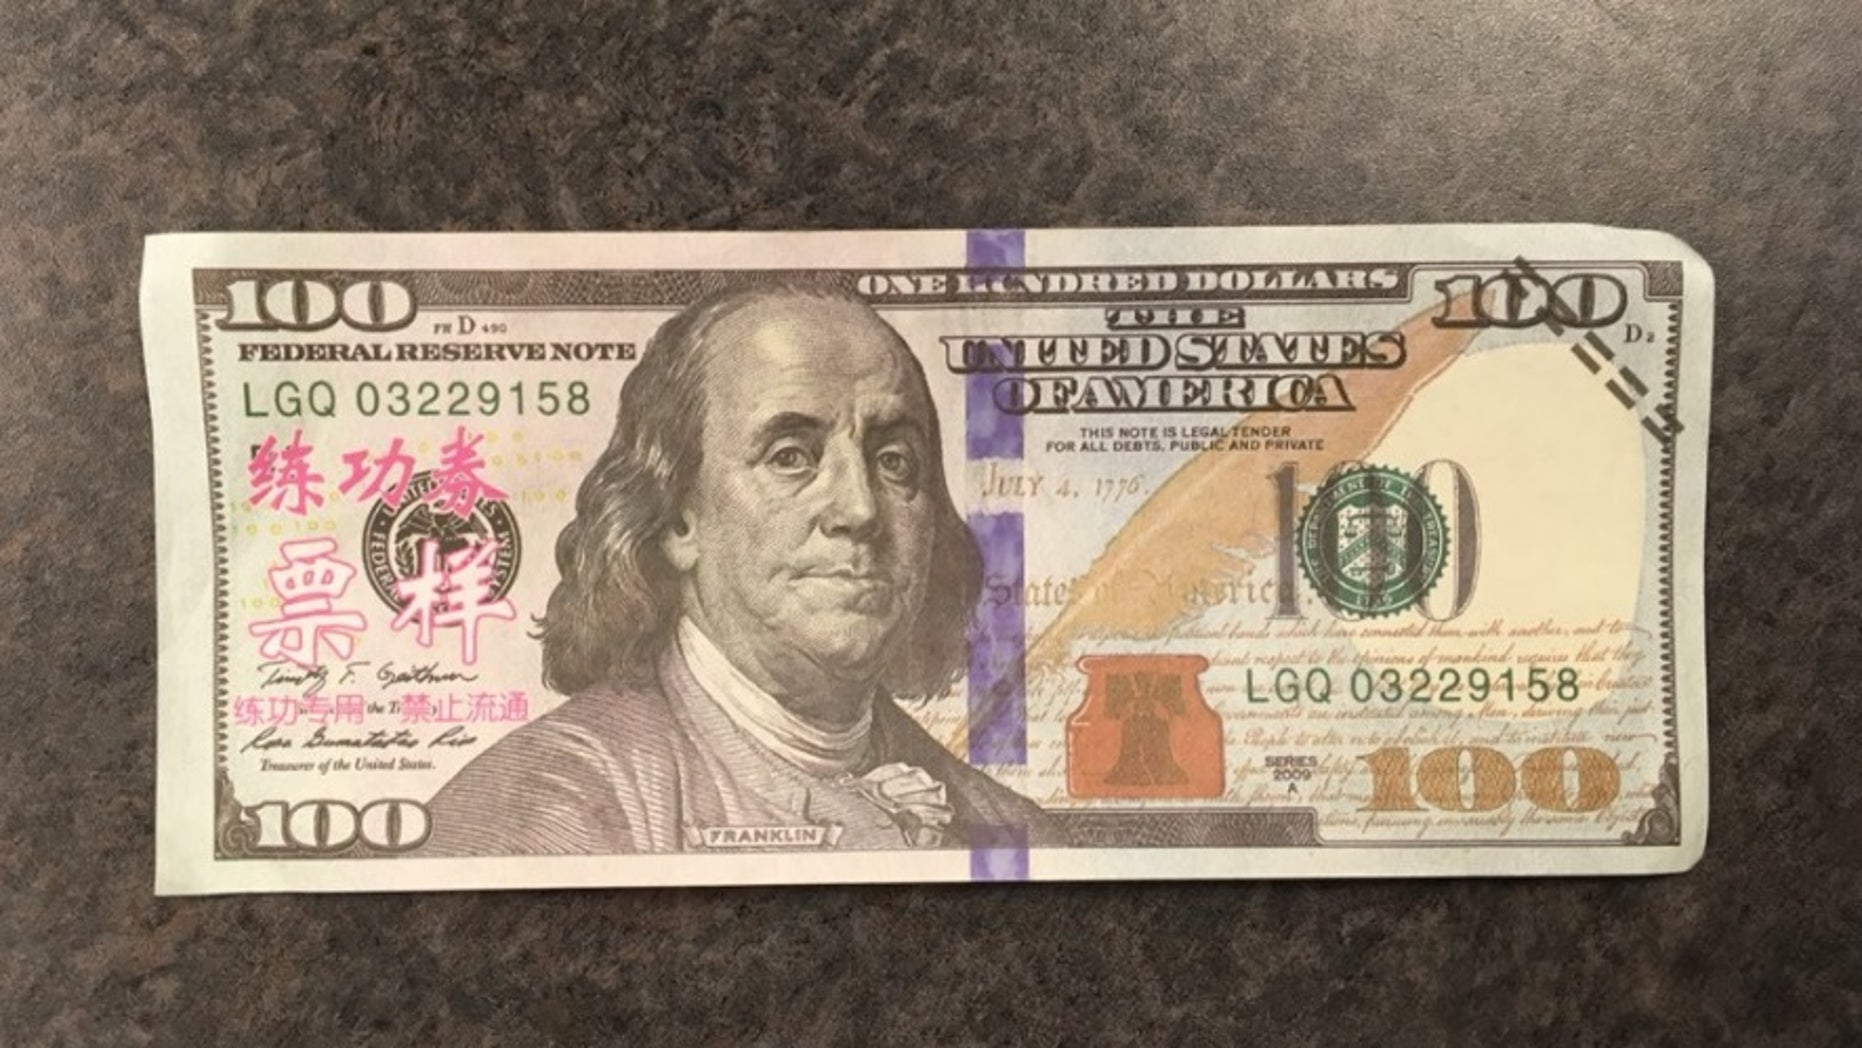 It's easy to spot how this $100 bill is fake.